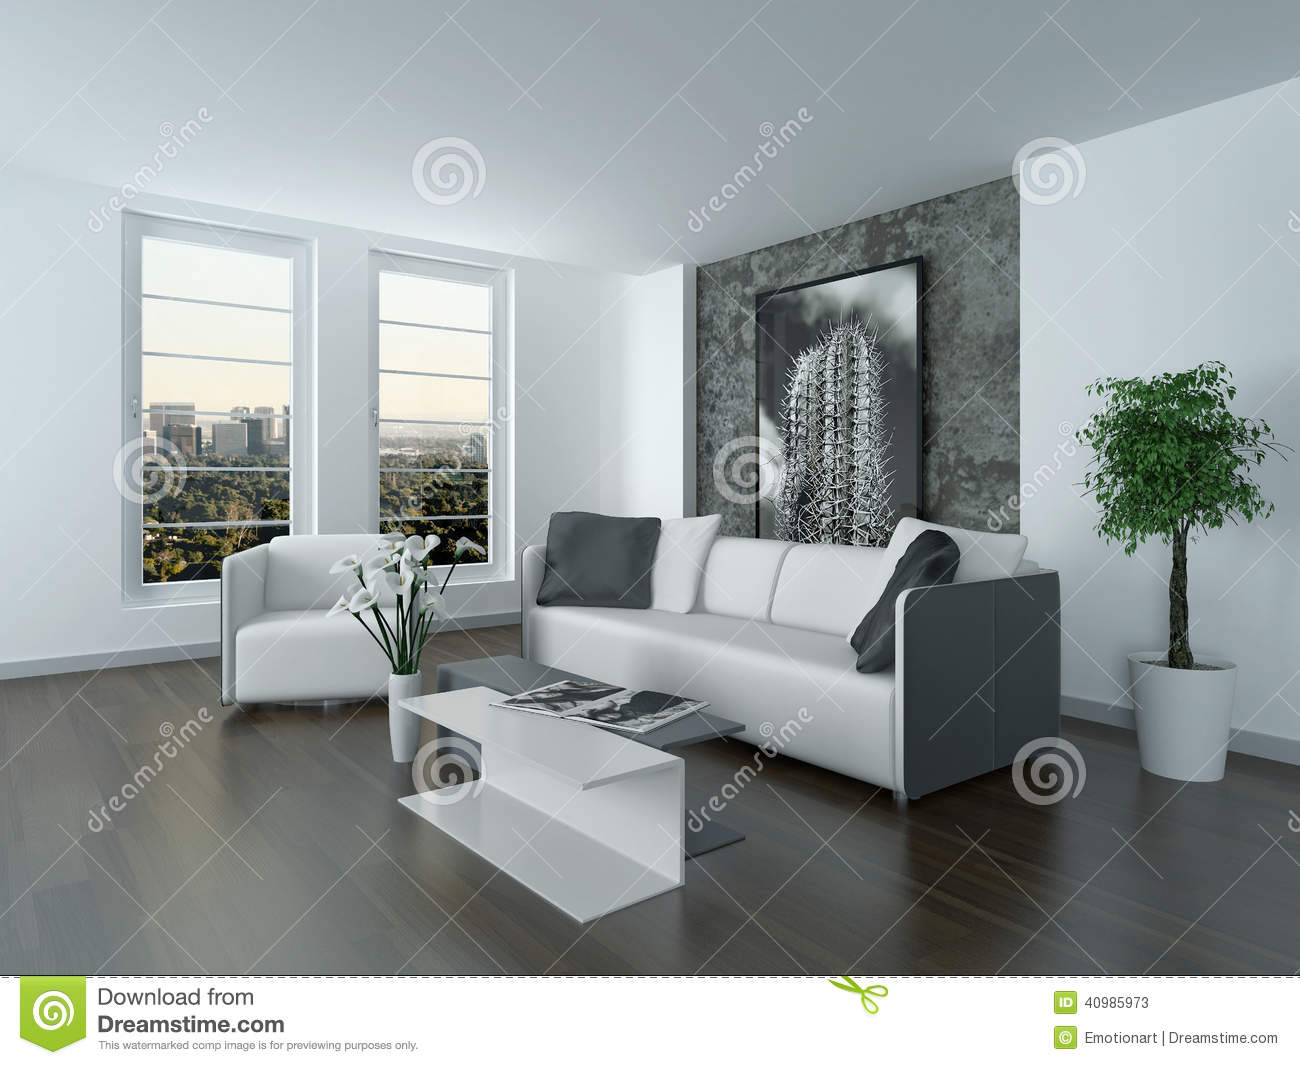 Salon blanc noir violet : Stock illustration modern grey white sitting room interior comfortable lounge suite art two large windows image